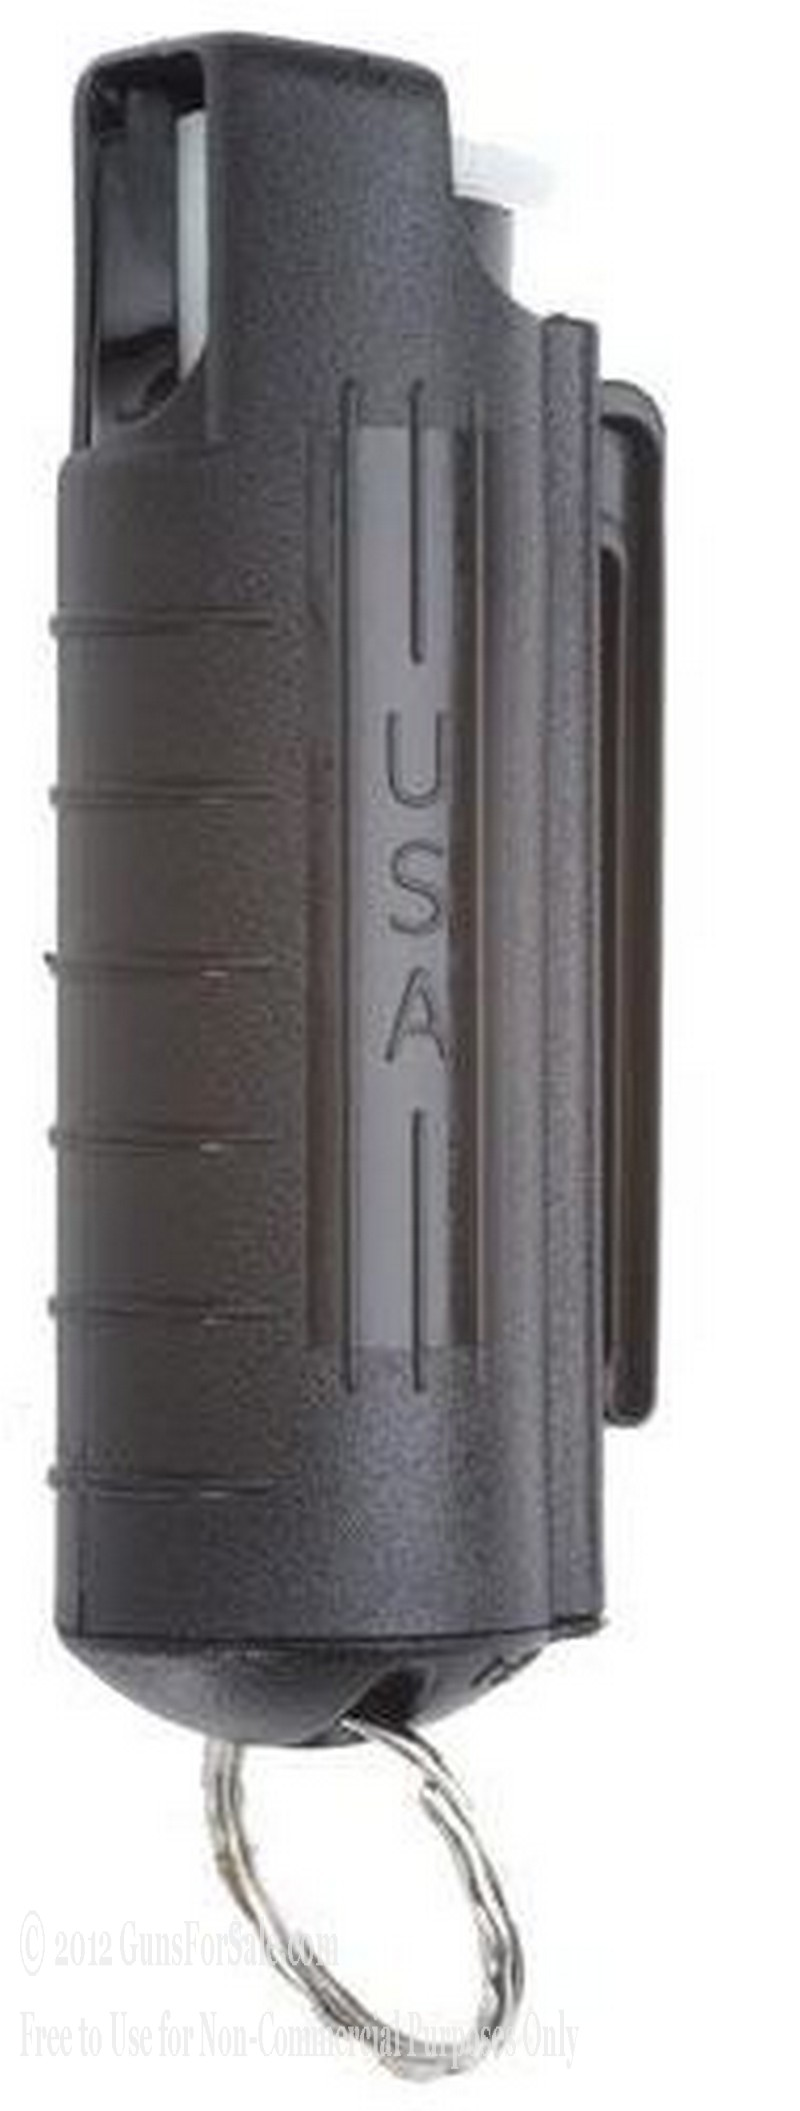 Mace - 10% Pepper Spray - Hard Key Case with Key Ring - Black - 1